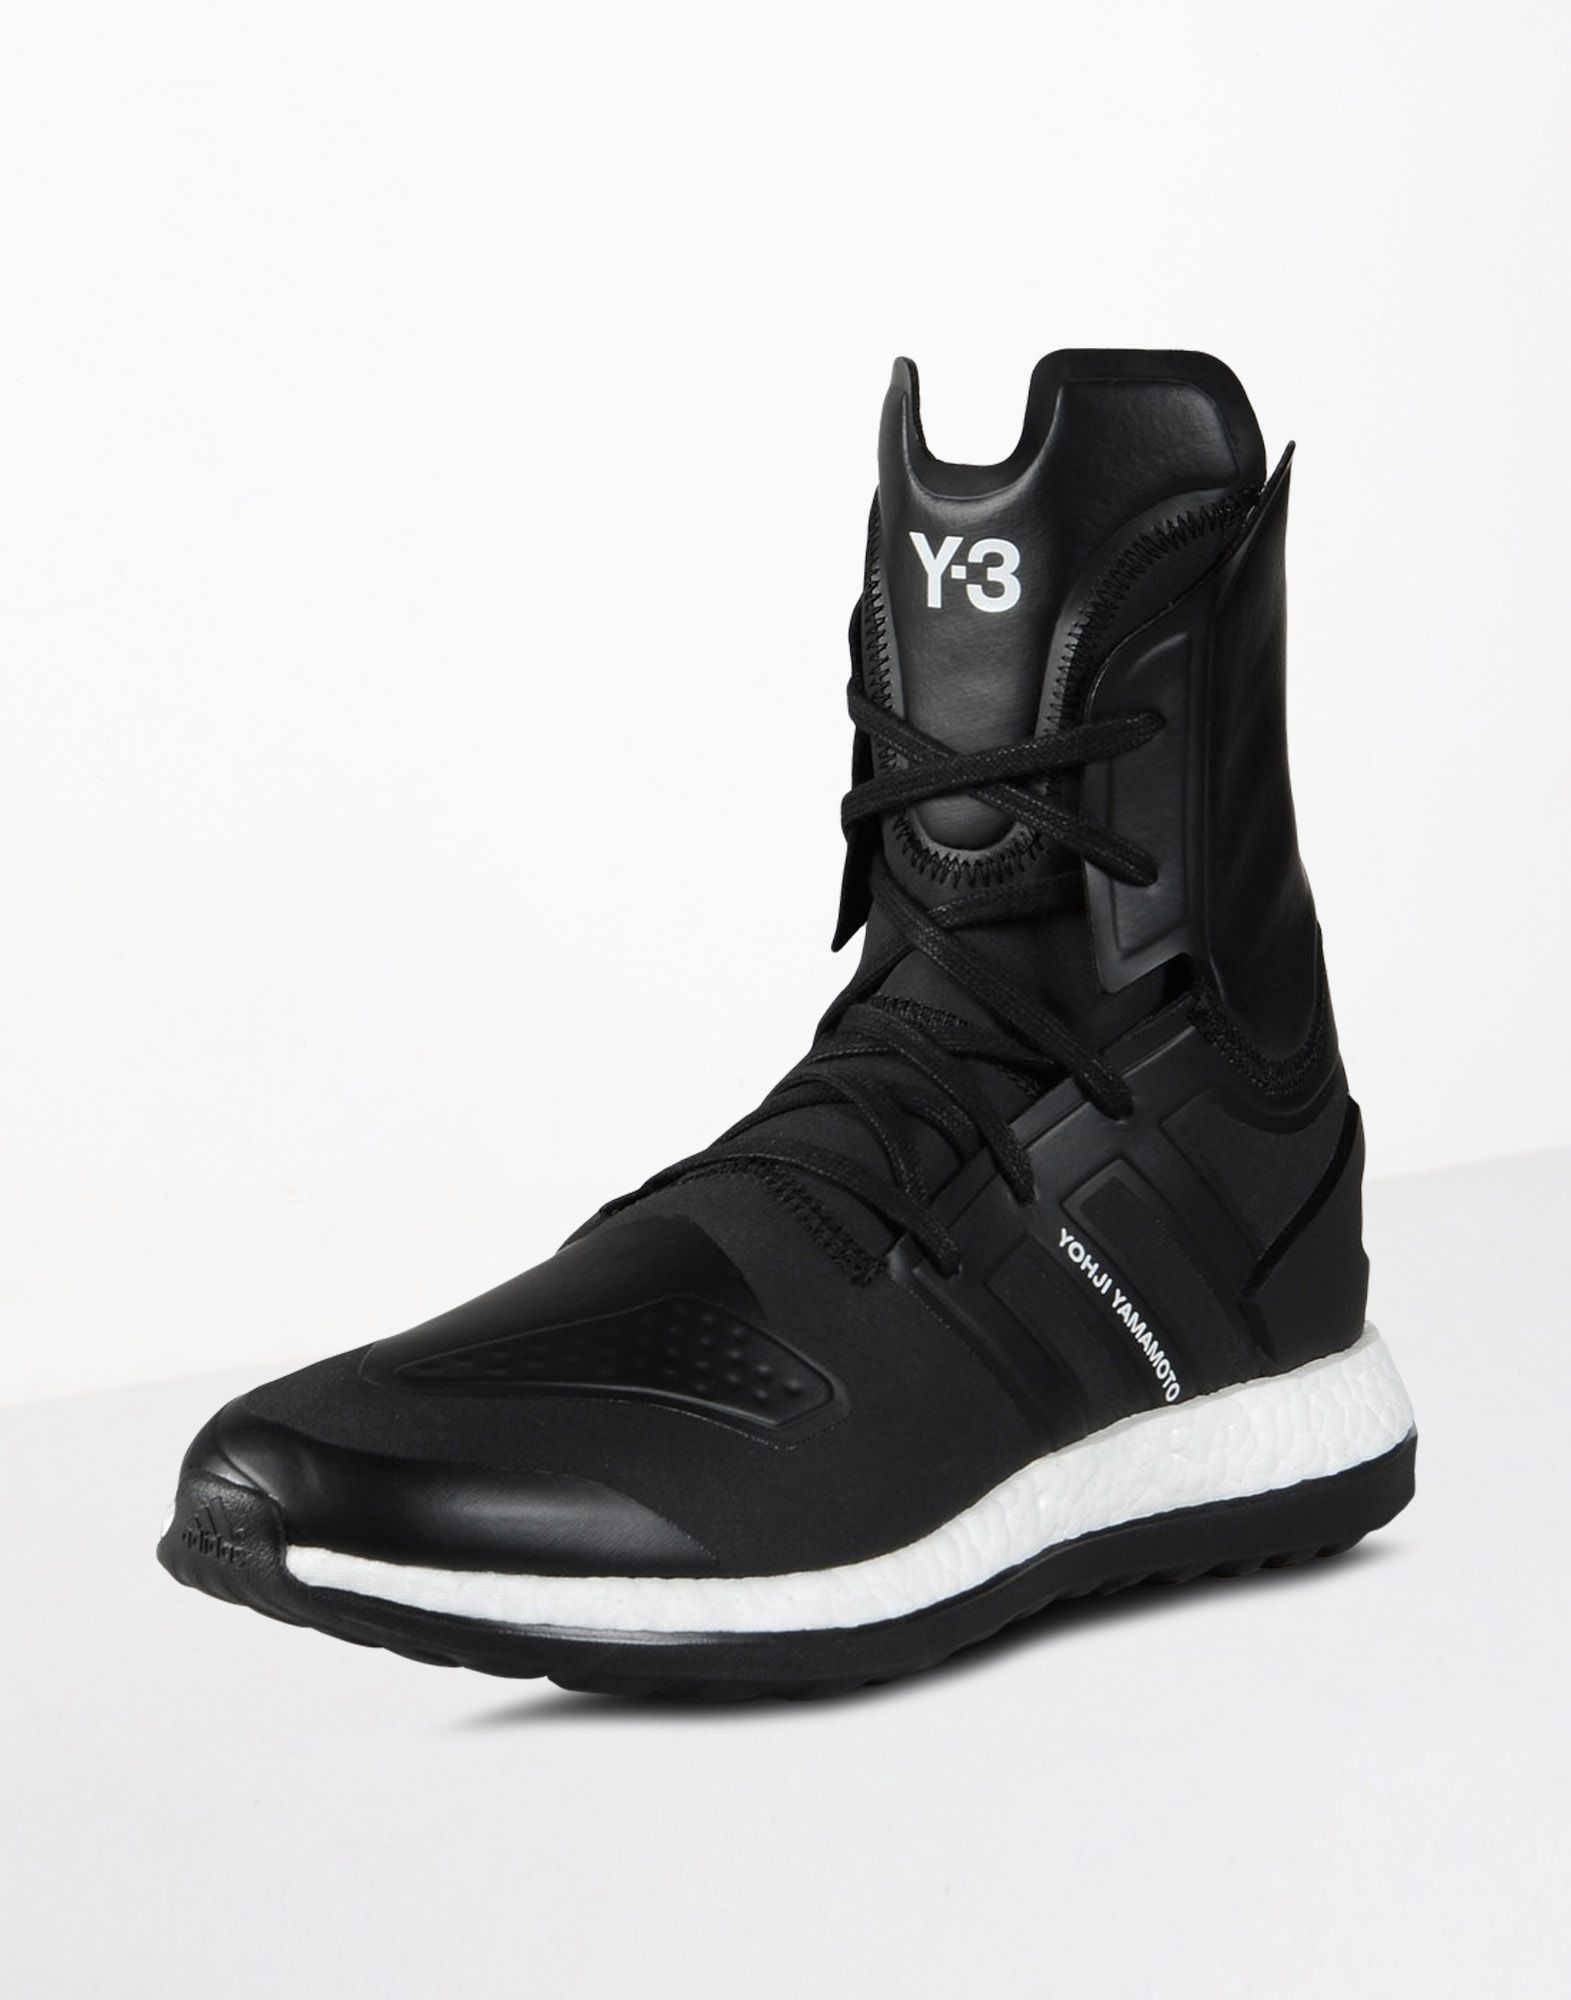 brand new 833b5 6f852 Y-3 PUREBOOST ZG HIGH SHOES man Y-3 adidas